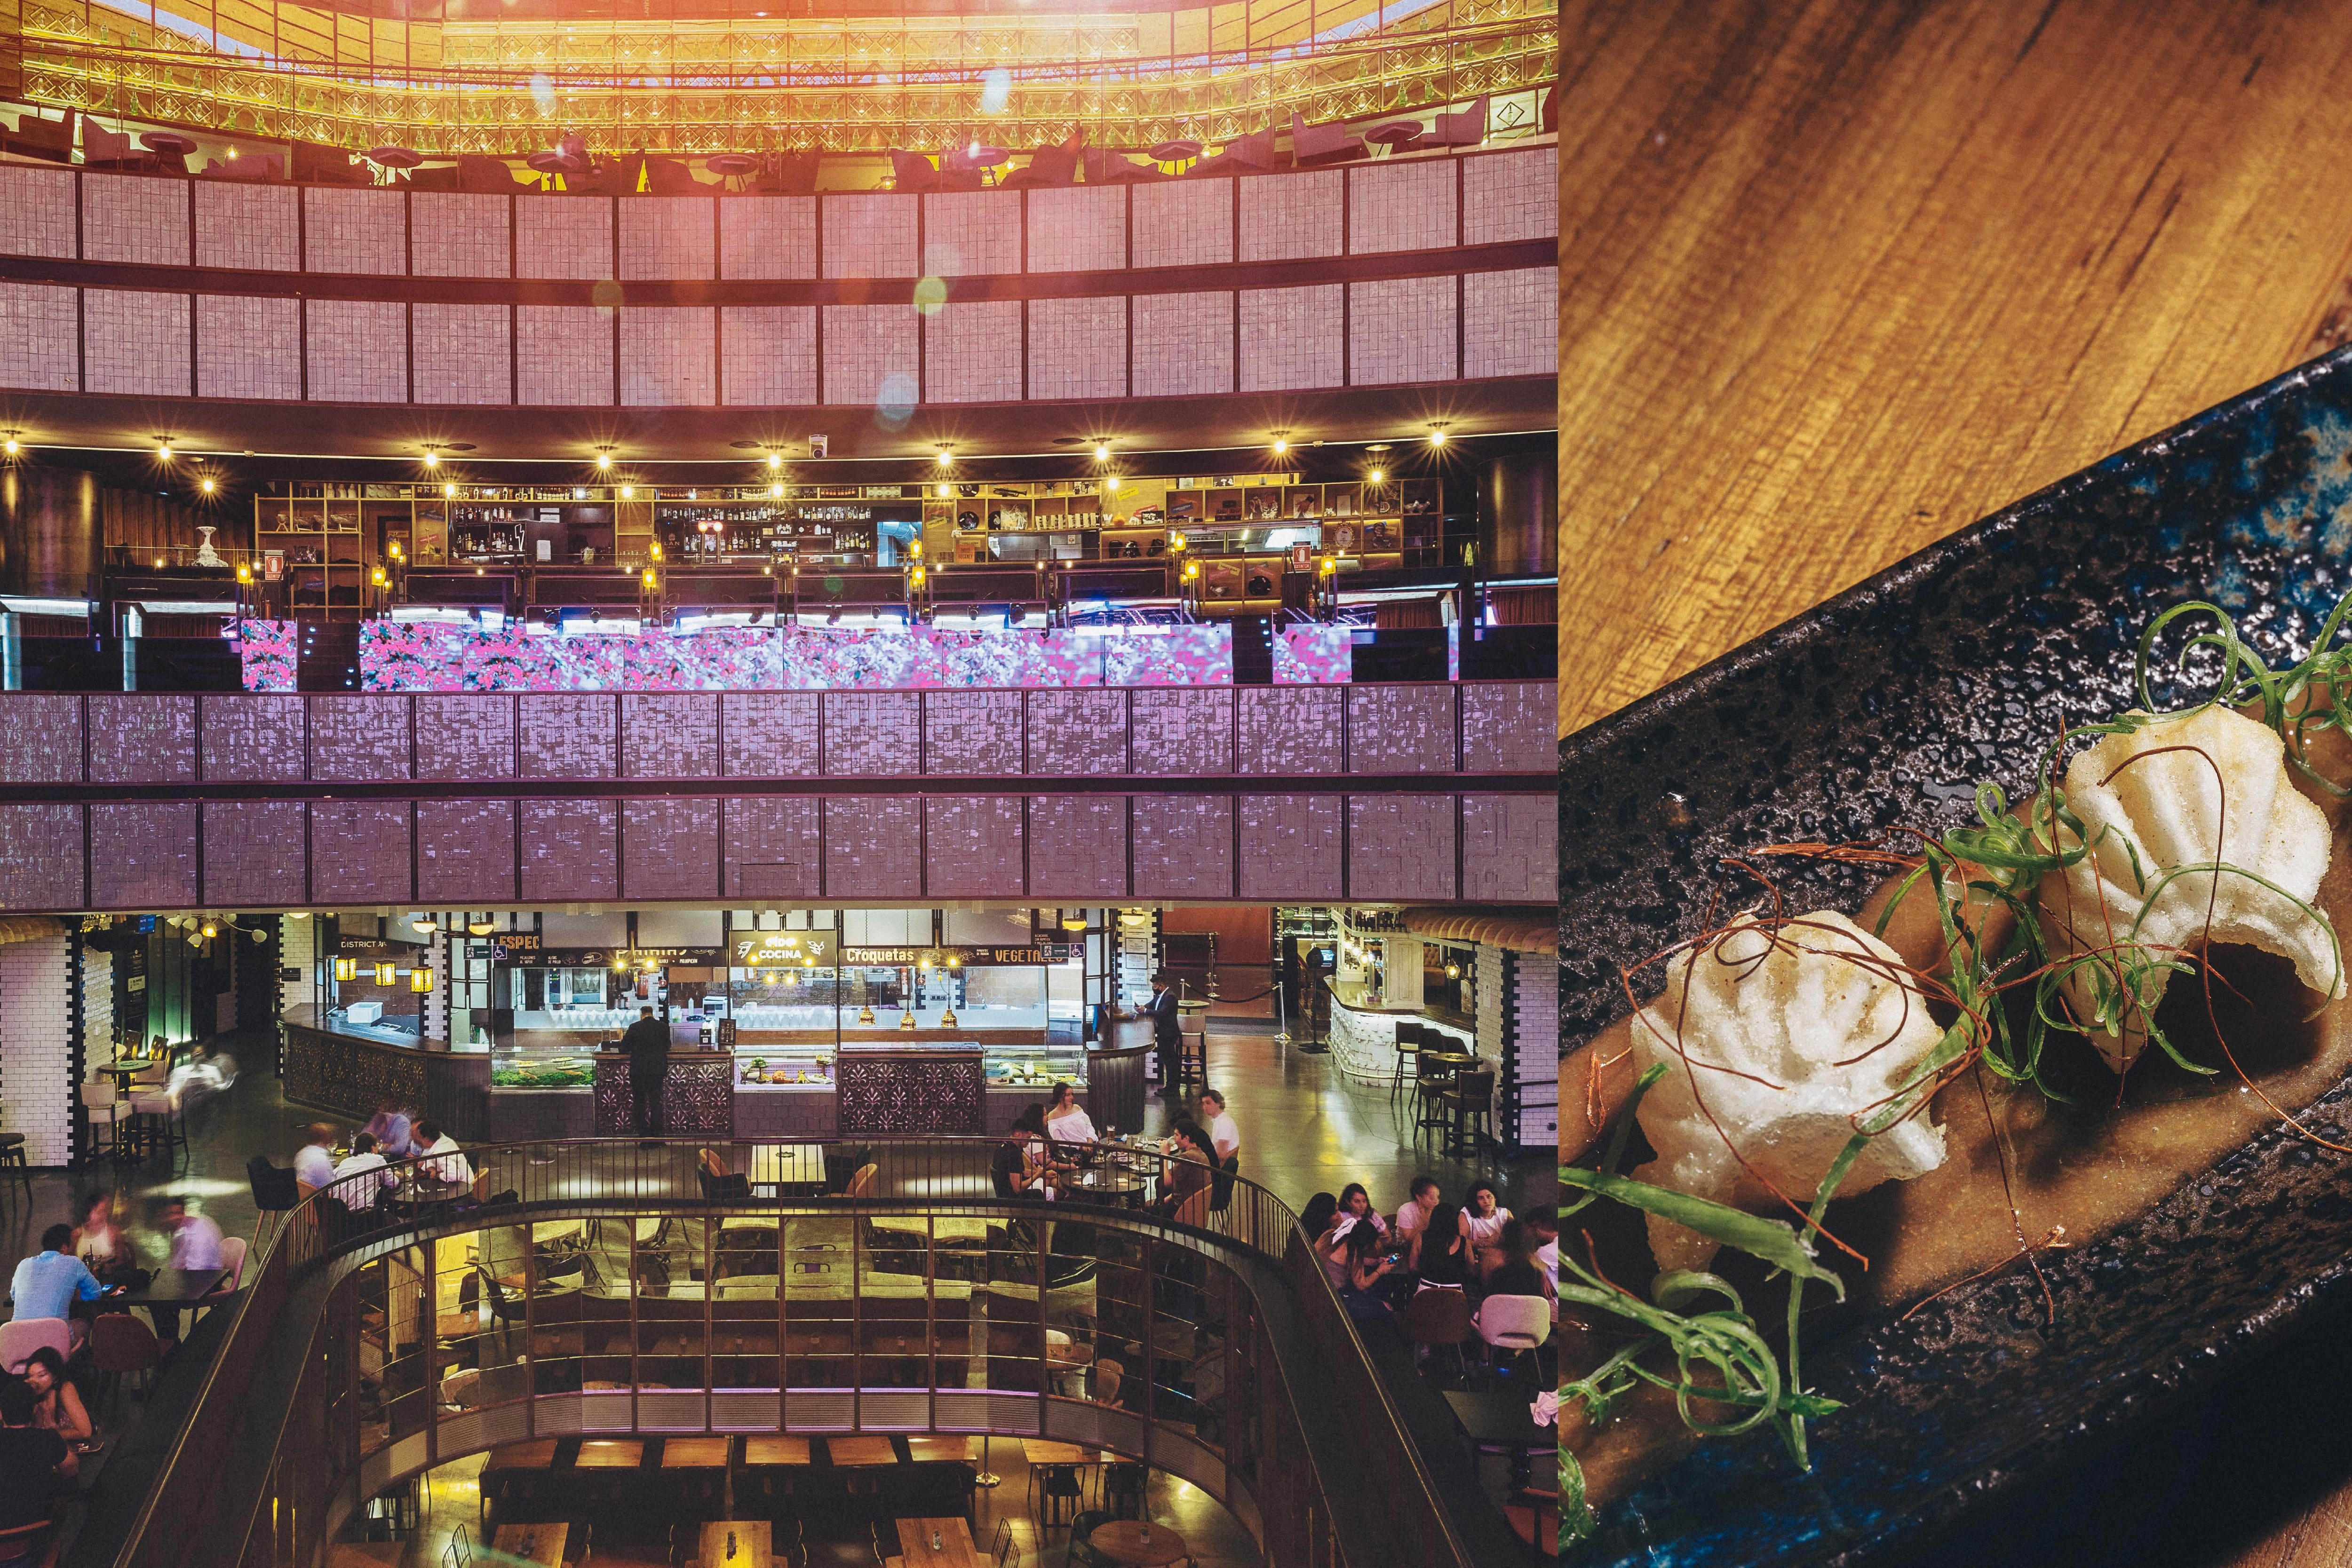 Collage of images showing the interior of Platea and a a dish of gyoza